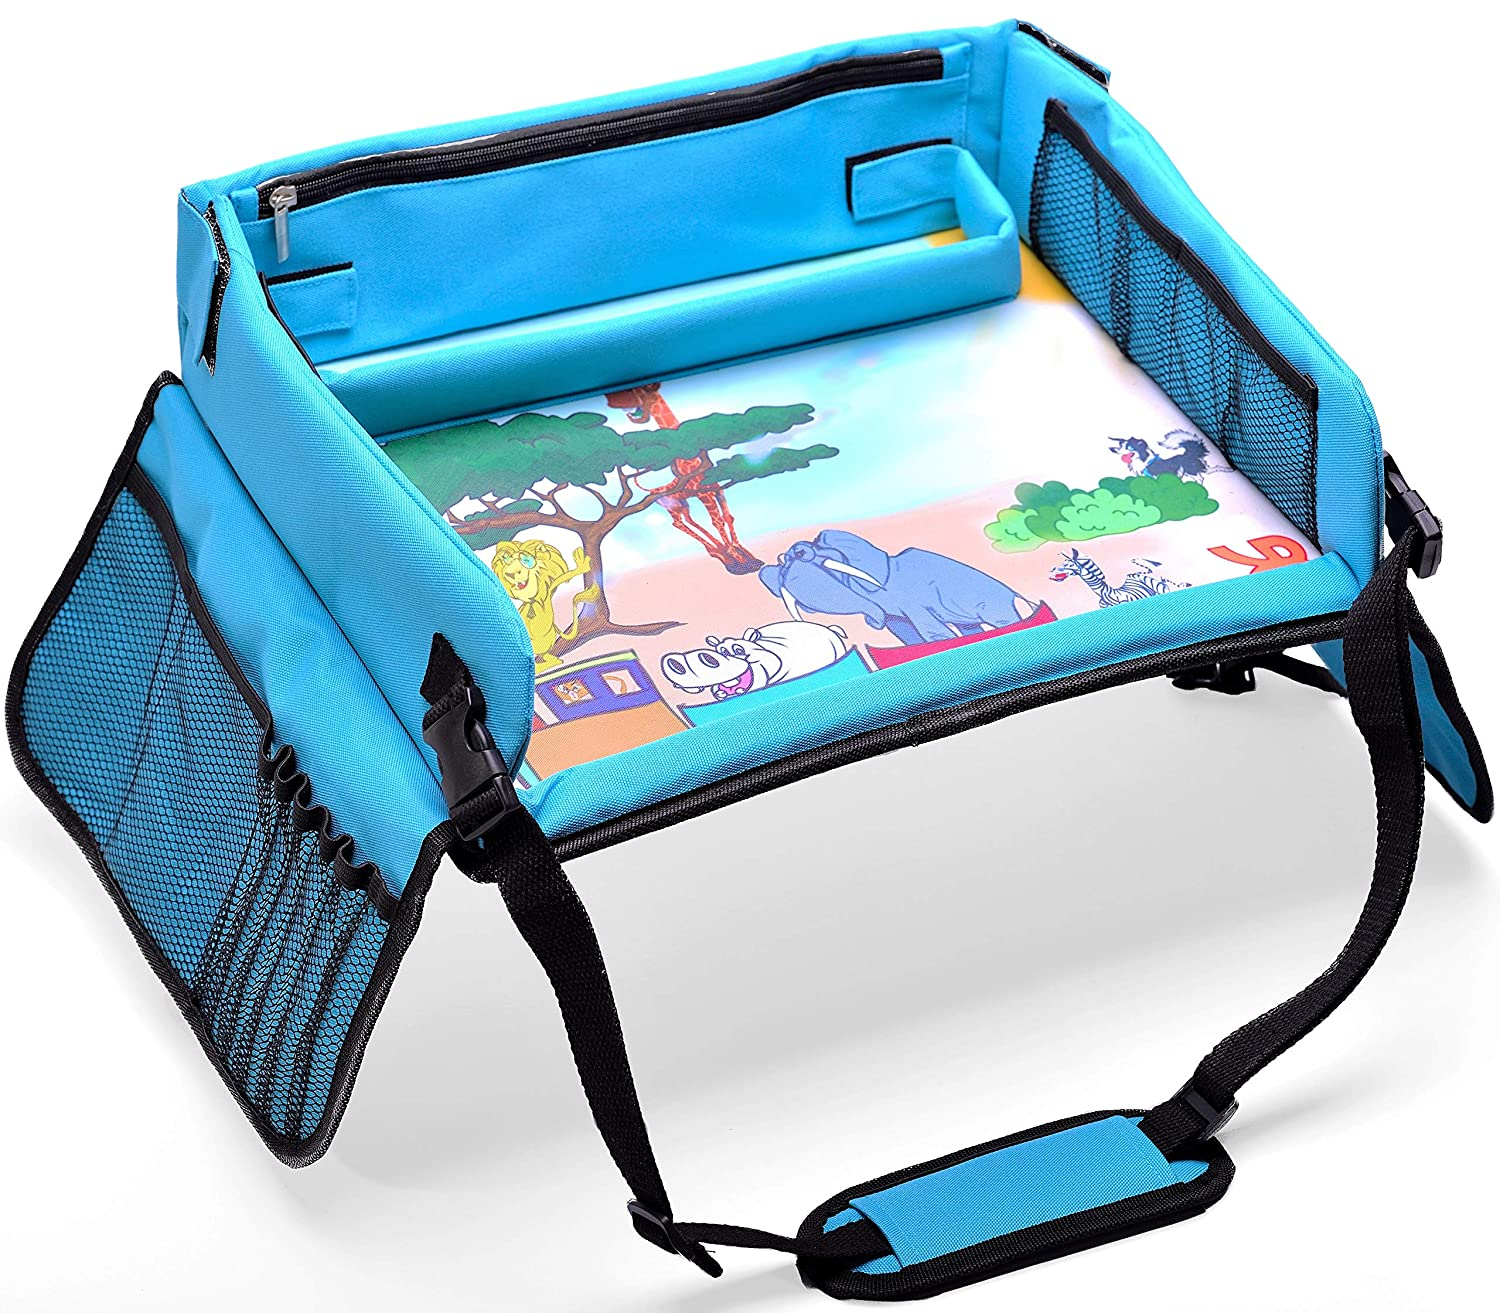 Kids Travel Play Tray – Activity, Snack Tray & Organizer for Car Seat, Stroller Or Airplane Traveling – Keeps Children Entertained – Portable and Foldable + Free Bag & E-Book (Blue) … Kids Bright Toys